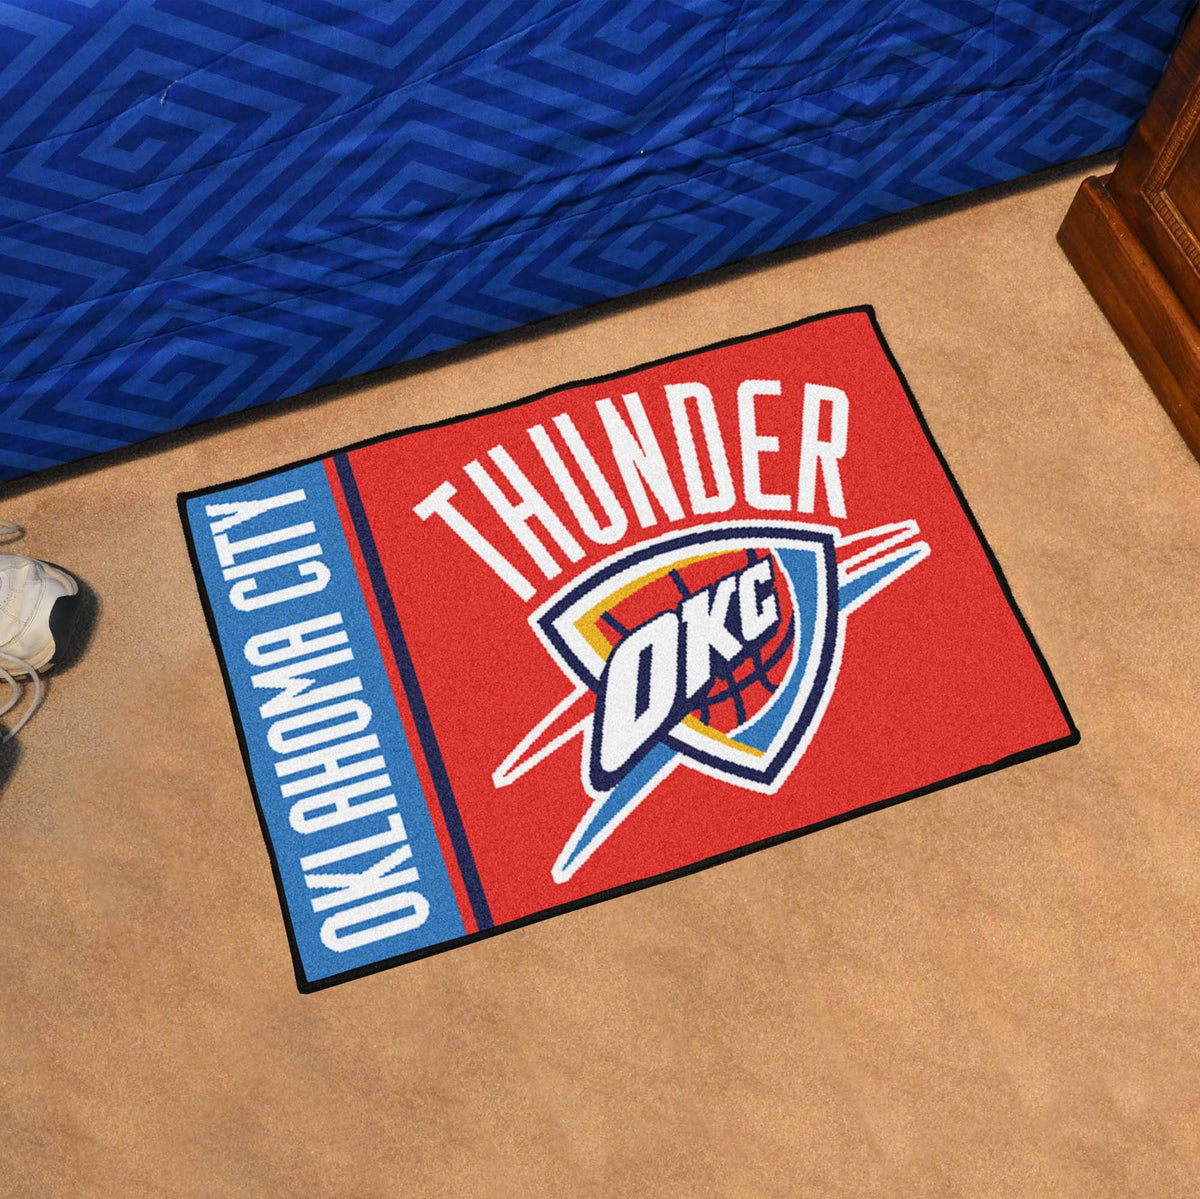 NBA - Uniform Starter Mat NBA Mats, Rectangular Mats, Uniform Starter Mat, NBA, Home Fan Mats Oklahoma City Thunder